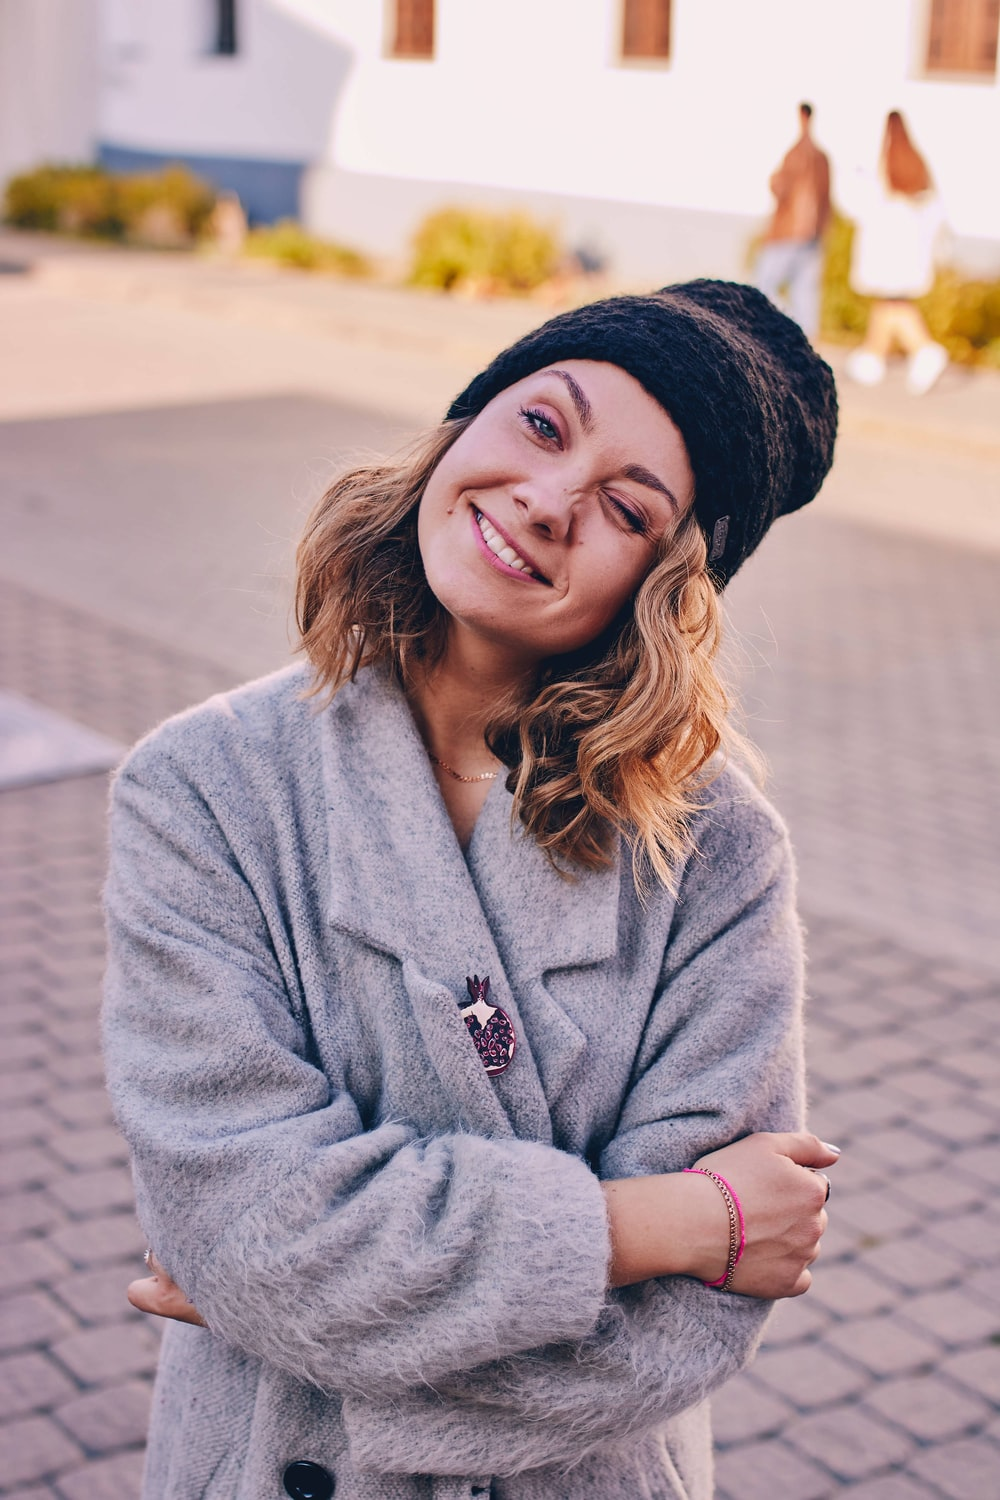 woman in gray jacket and black knit cap making face gesture